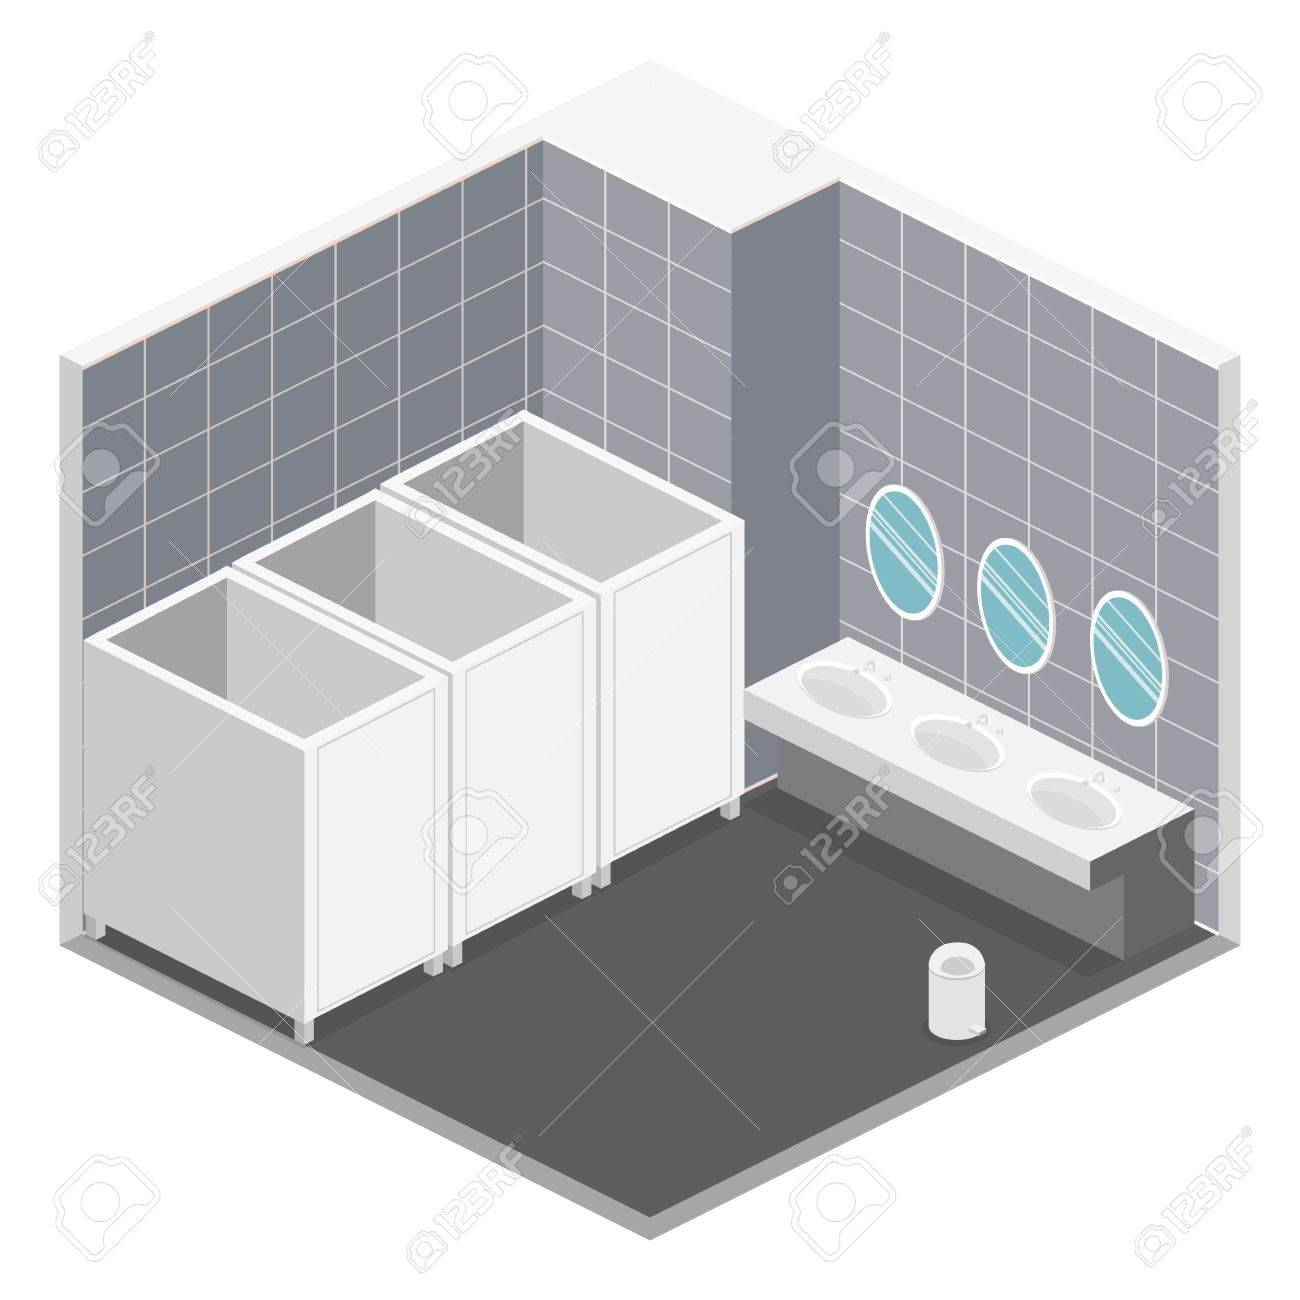 Isometric 3d Isolated Concept Vector Cutaway Interior Of Public